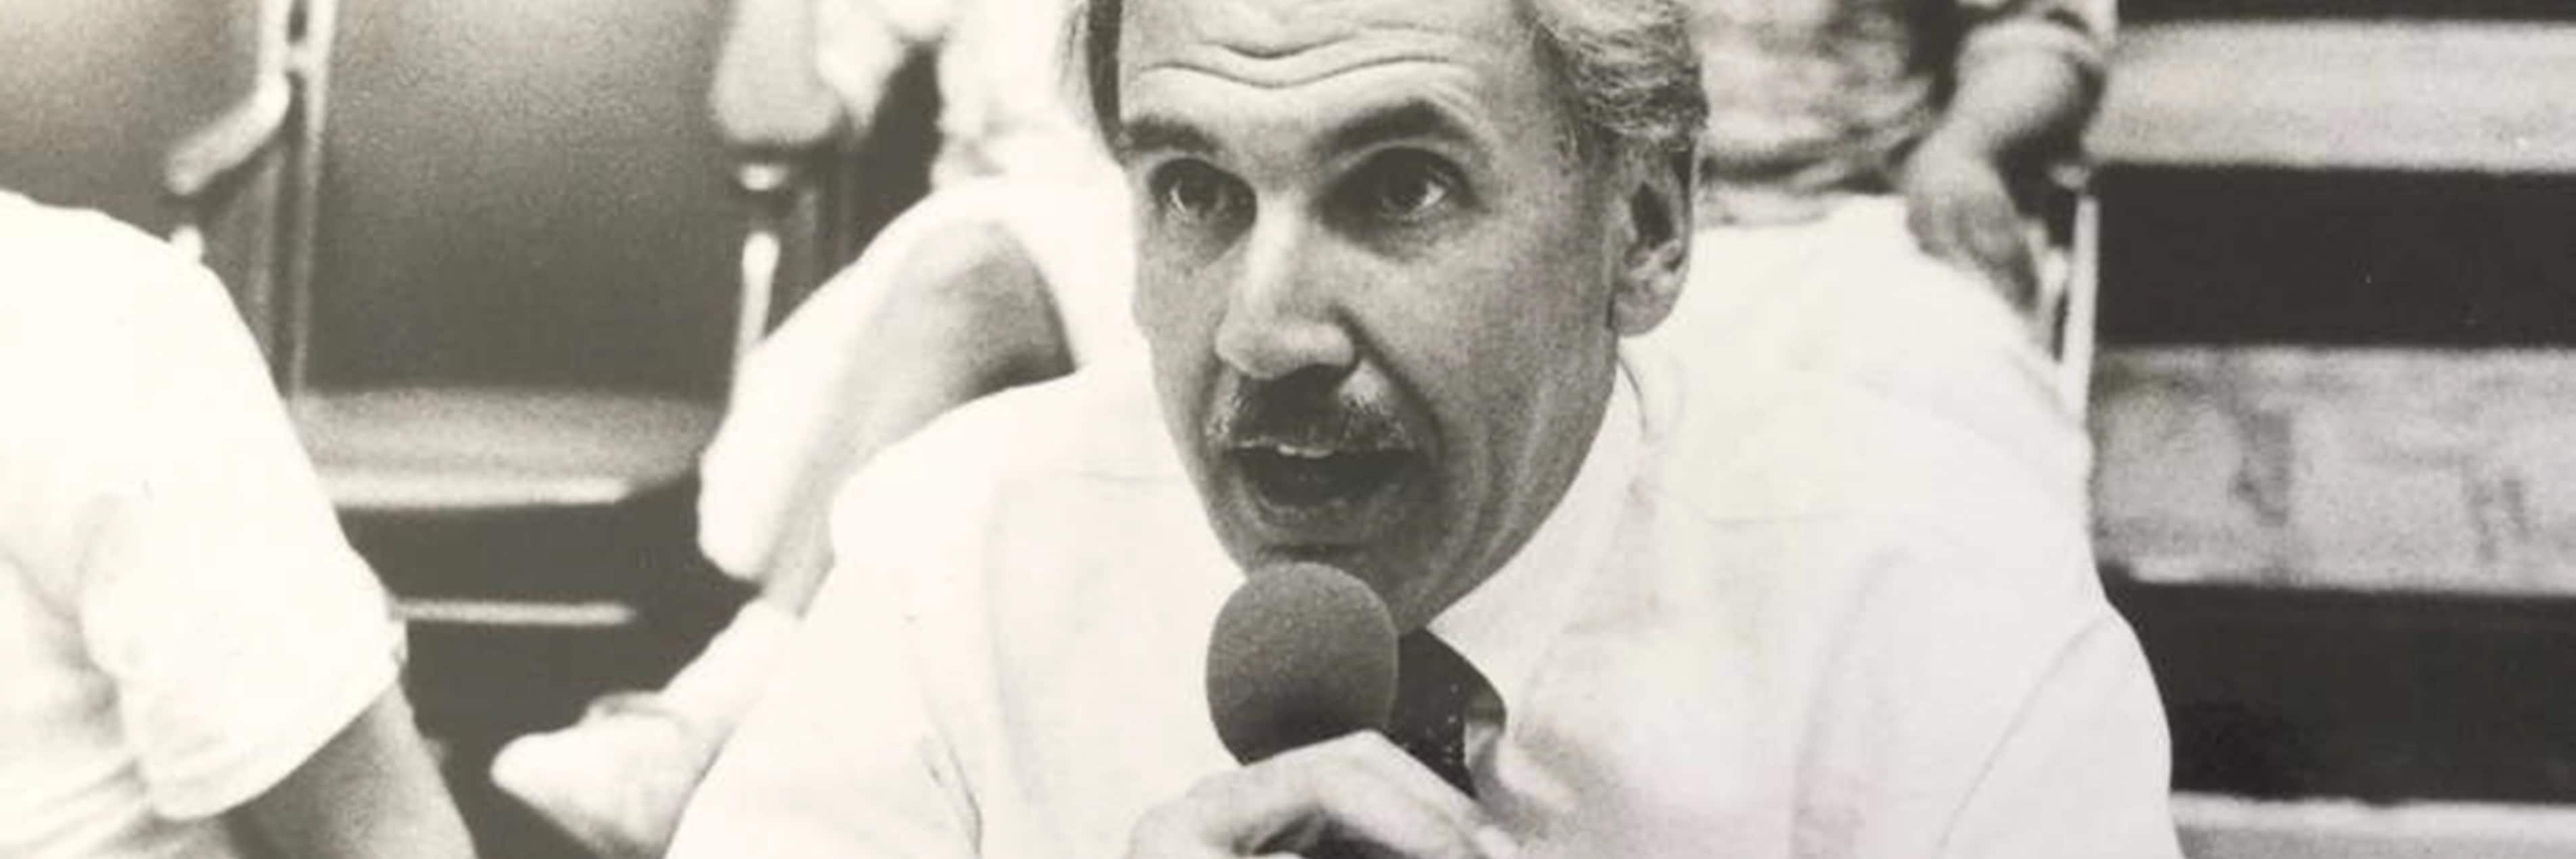 A Voice Undefeated: The Story of Ralph Lawler